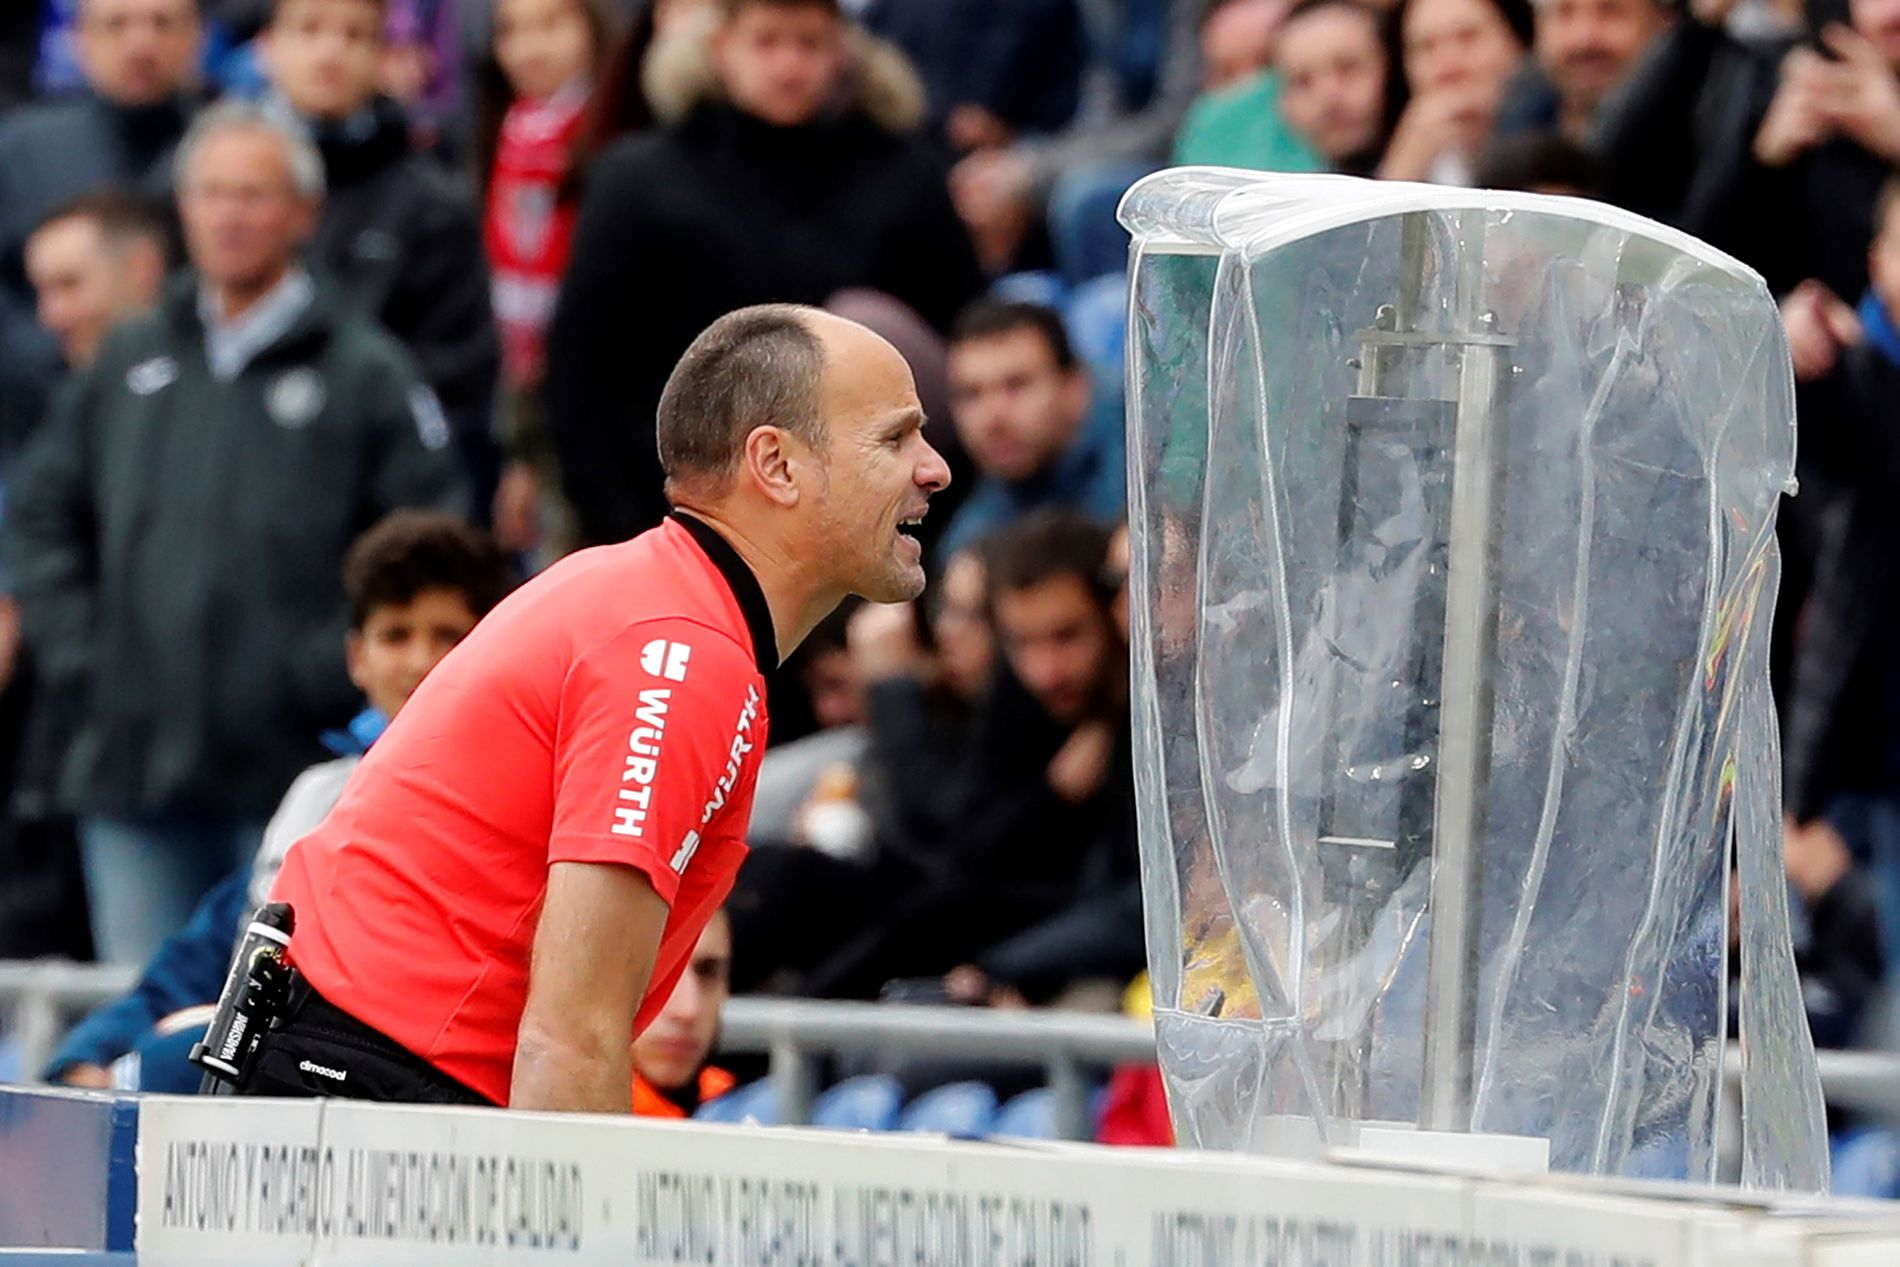 VIDEO KILLED THE REFEREE STAR? Spanske Mateu Lahoz foretar en såkalt «on field review» av en situasjon under La Liga-kampen mellom Sevilla og Getafe.